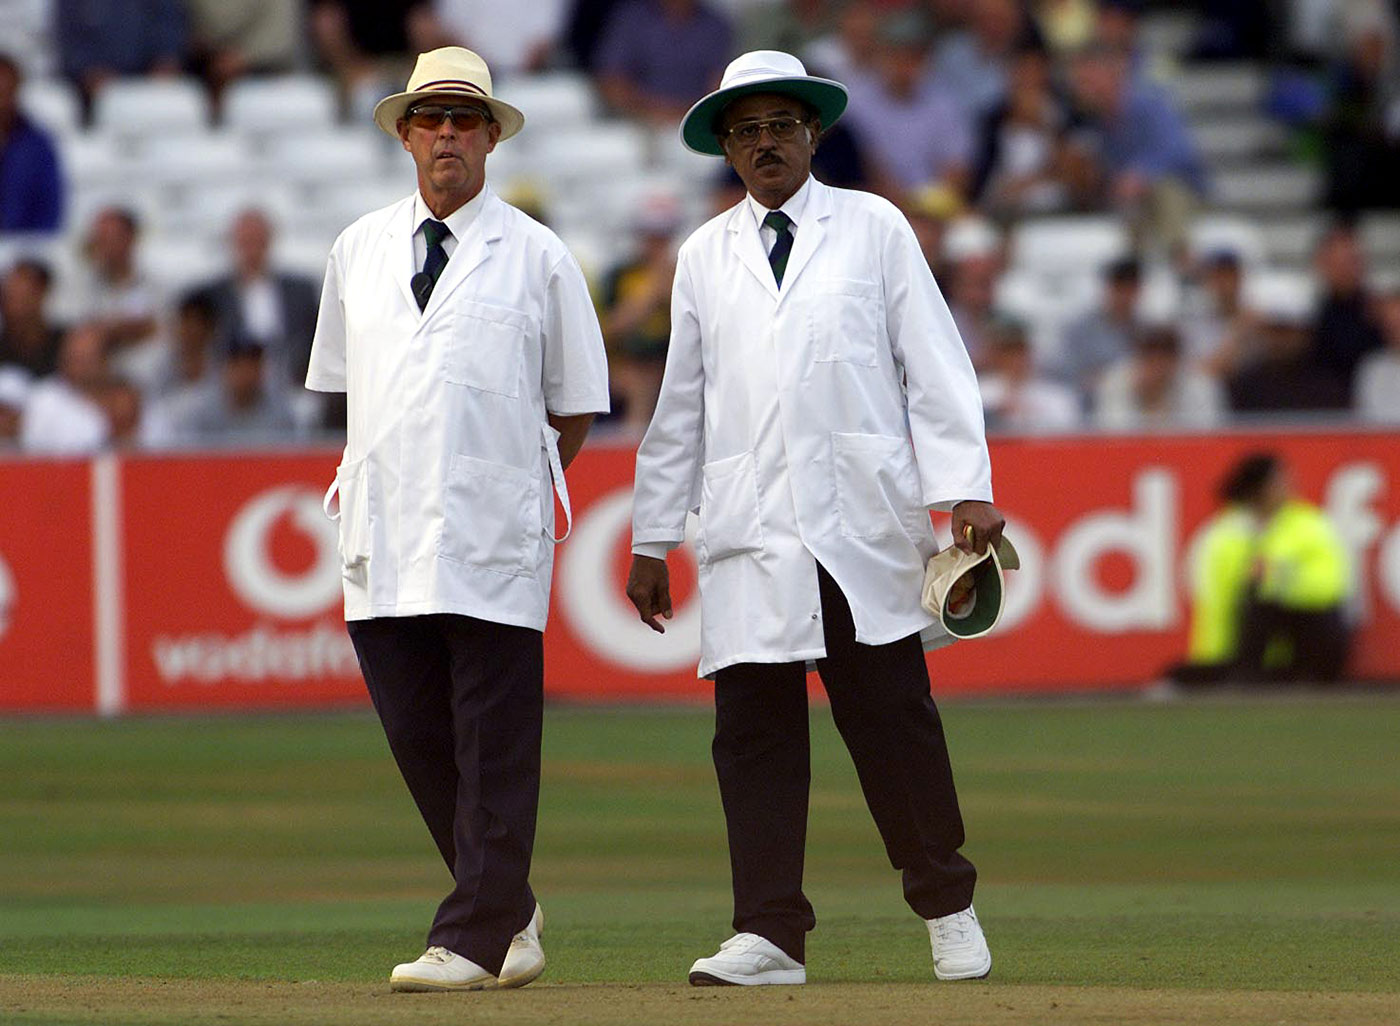 Standing in the 2001 Trent Bridge Ashes Test, with S Venkataraghavan